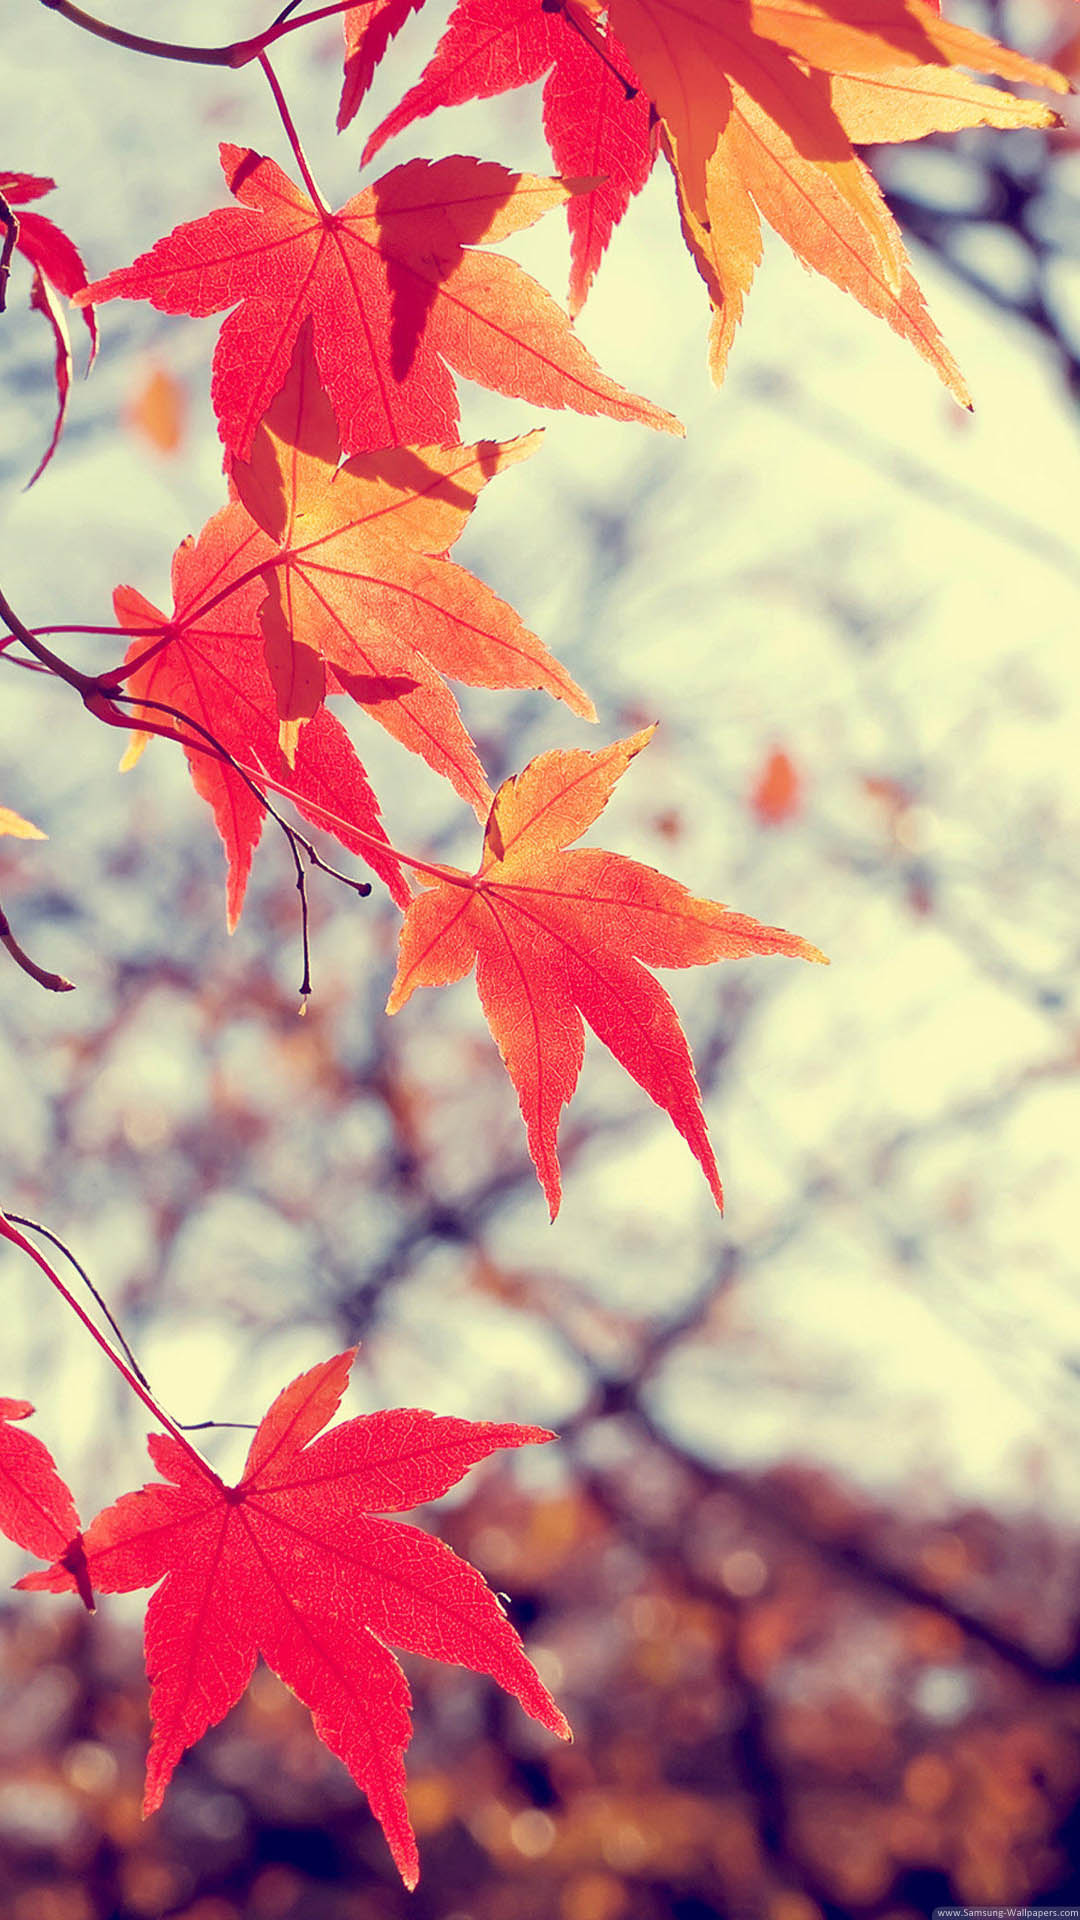 hd wallpapers for mobile,tree,leaf,black maple,maple leaf,red